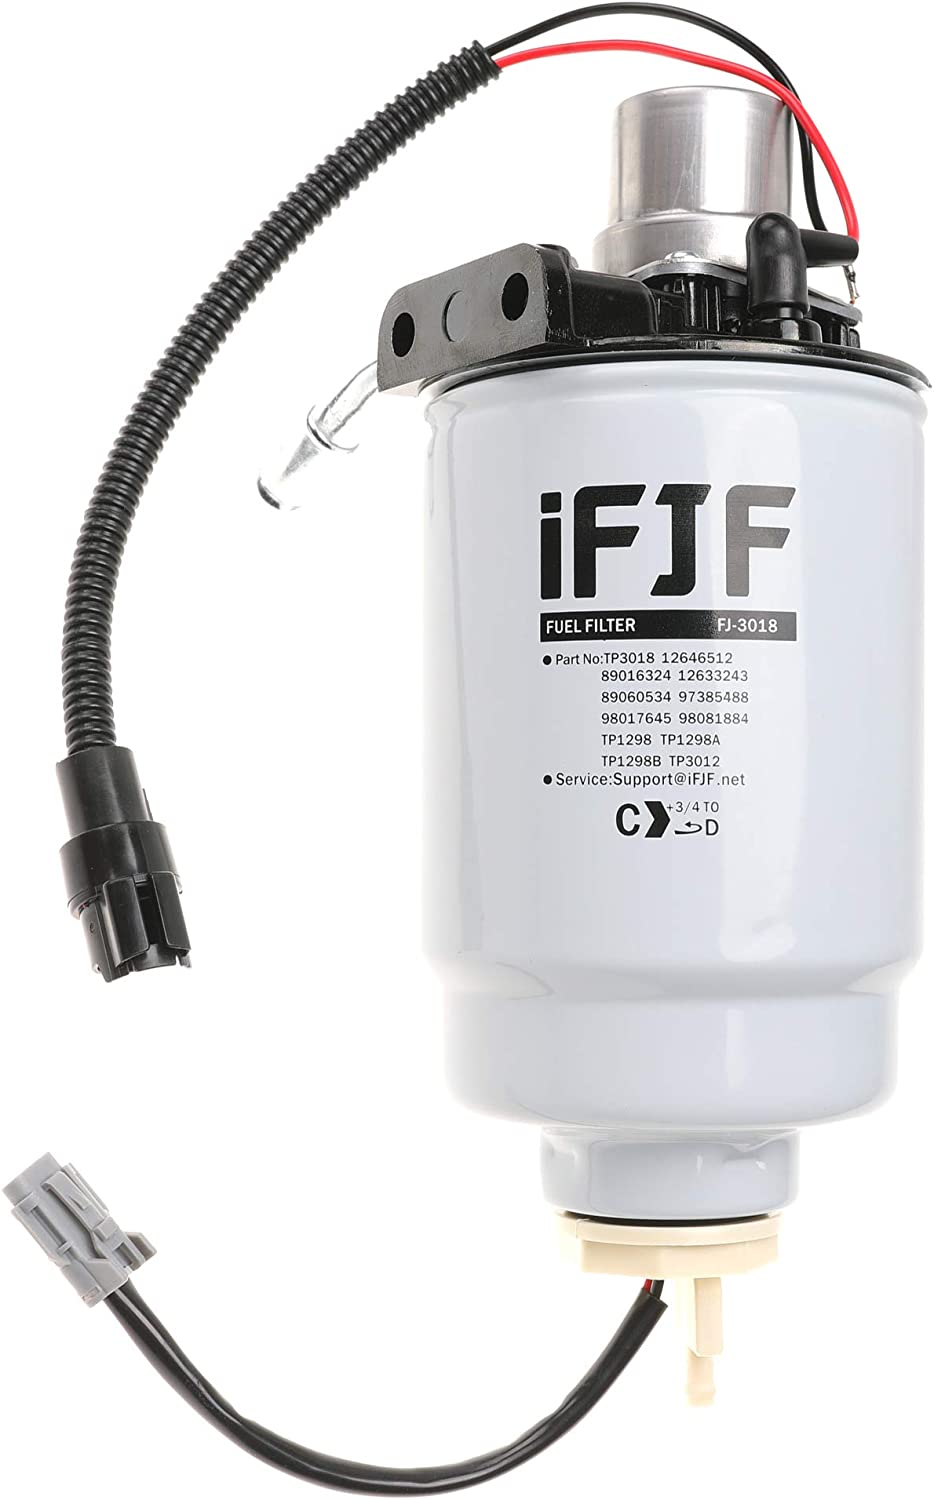 ifjf 12642623 fuel filter head for duramax fuel filter housing 6.6  replacement for gm chevrolet gmc duramax v8 6.6l fuel filter housing  2005-2013 (assembly): automotive - amazon.com  amazon.com